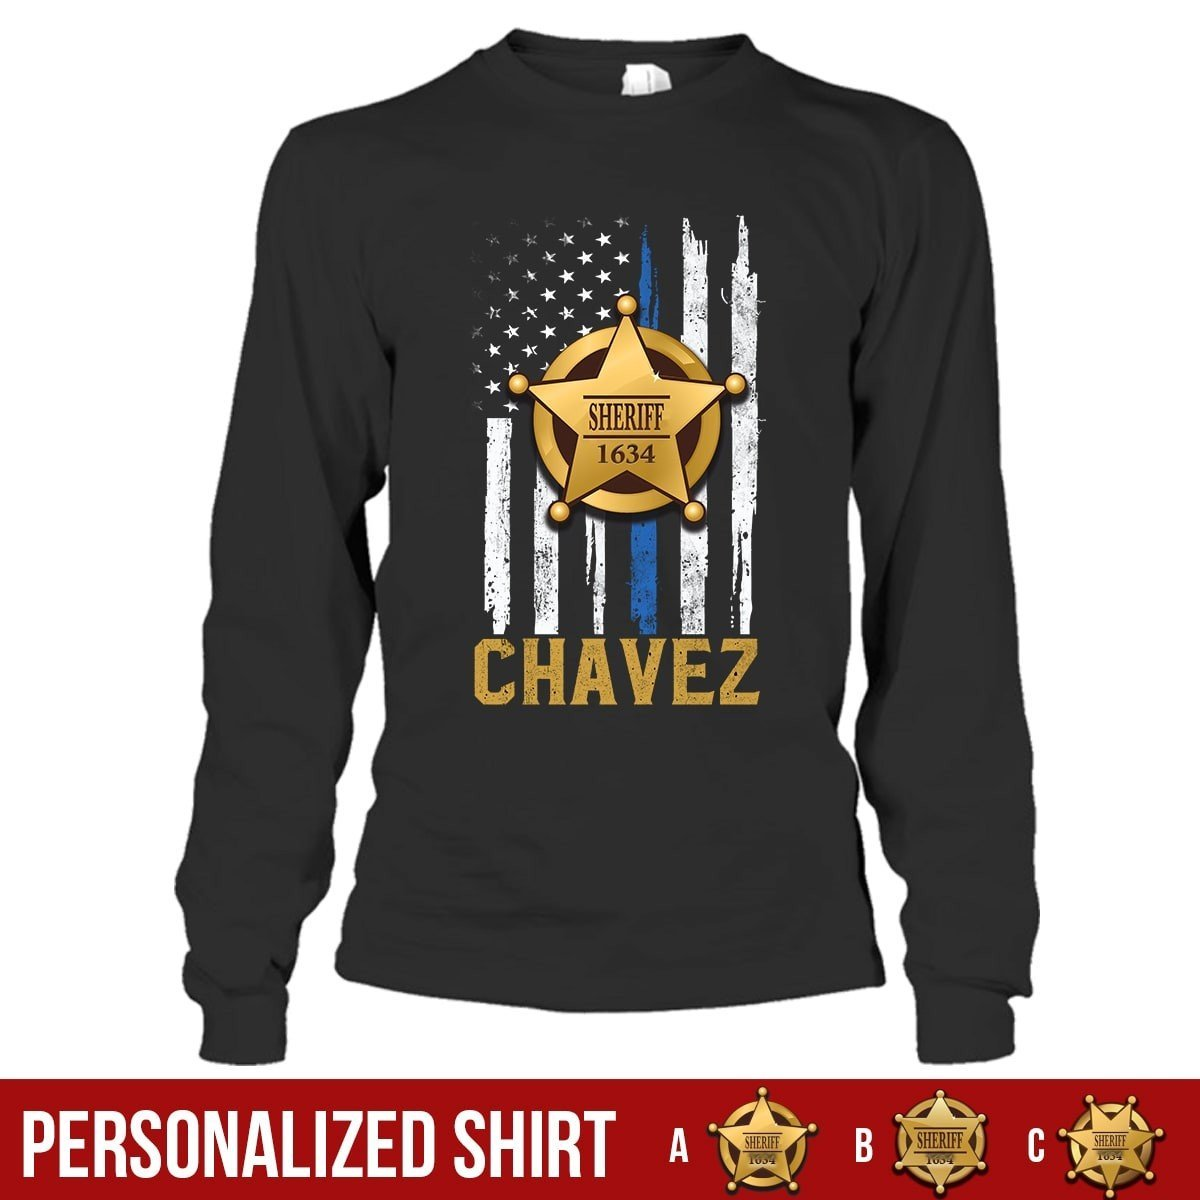 c10b4d1de Personalized Shirt - Thin Blue Line - Sheriff Badge - My Hero Wears Blue